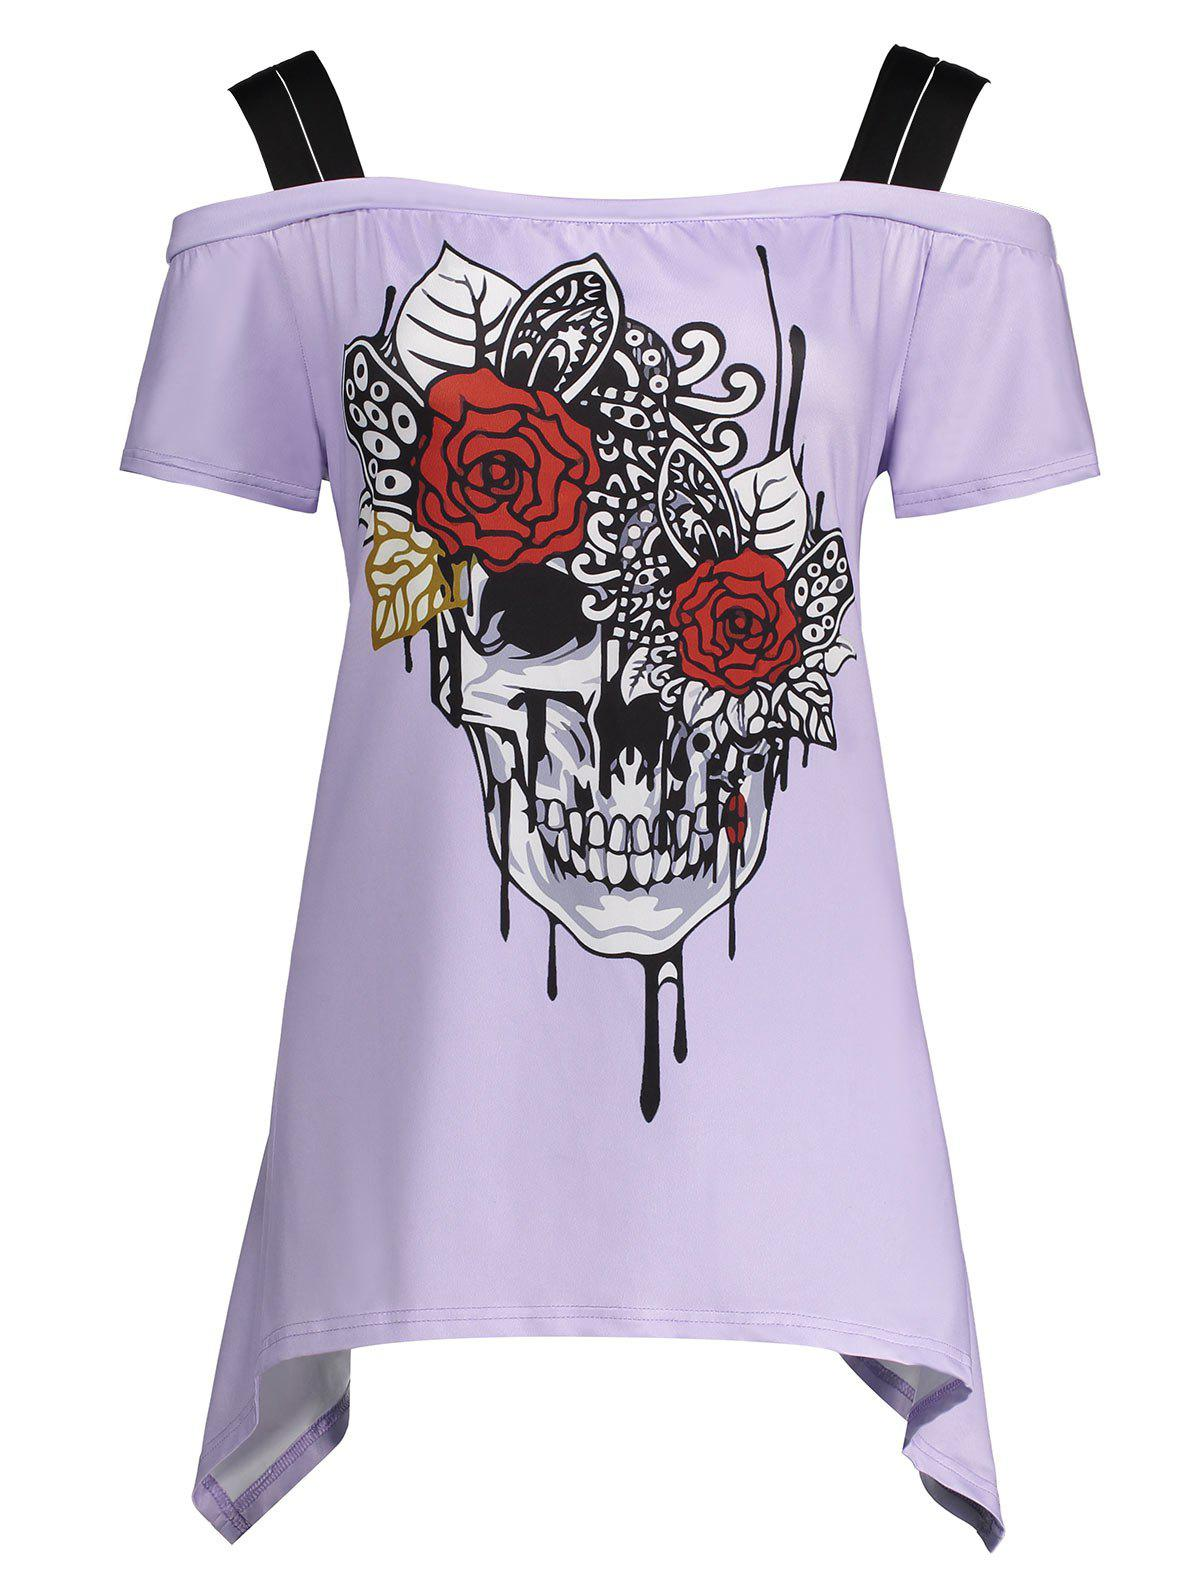 Plus Size Skull Print Cold Shoulder TopWOMEN<br><br>Size: 2XL; Color: LIGHT PURPLE; Material: Polyester; Shirt Length: Regular; Sleeve Length: Short; Collar: Spaghetti Strap; Style: Fashion; Season: Summer; Pattern Type: Skulls; Placement Print: No; Weight: 0.2500kg; Package Contents: 1 x Top;